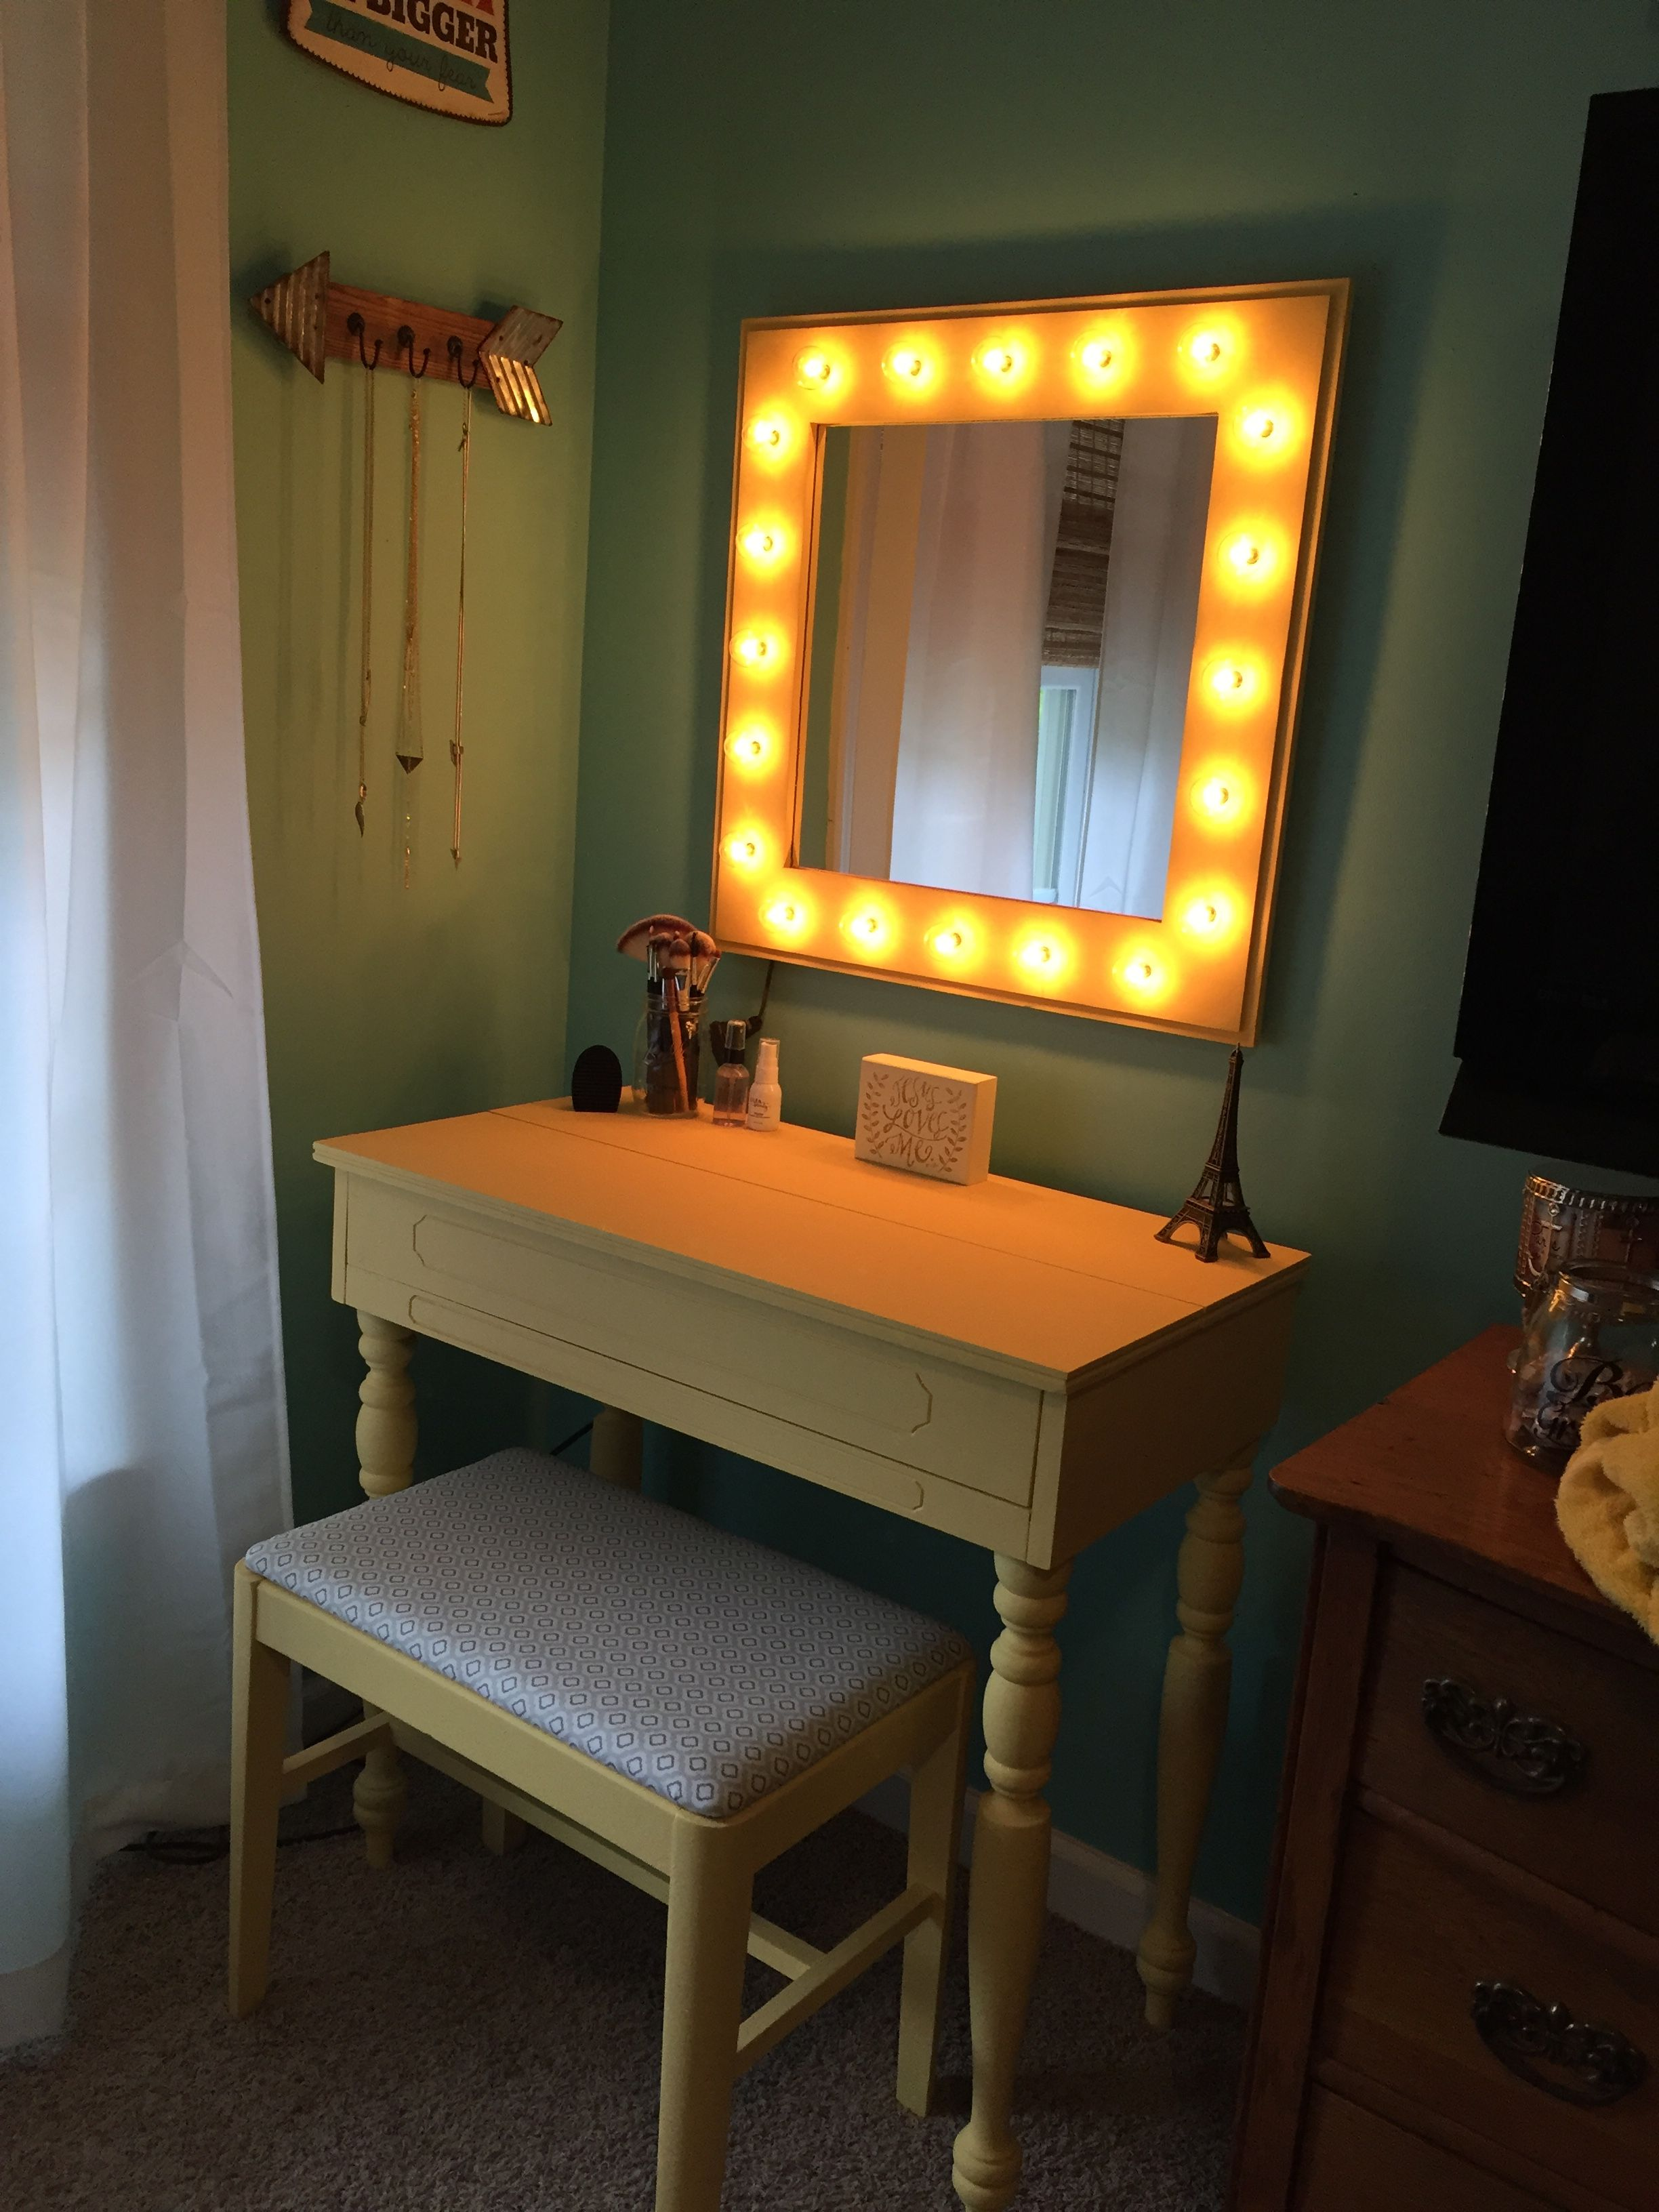 Vanity Mirror With Lights Walmart Amazing Diy Restoration Of A Secretary Into A Makeup Vanitymirror Made Decorating Design